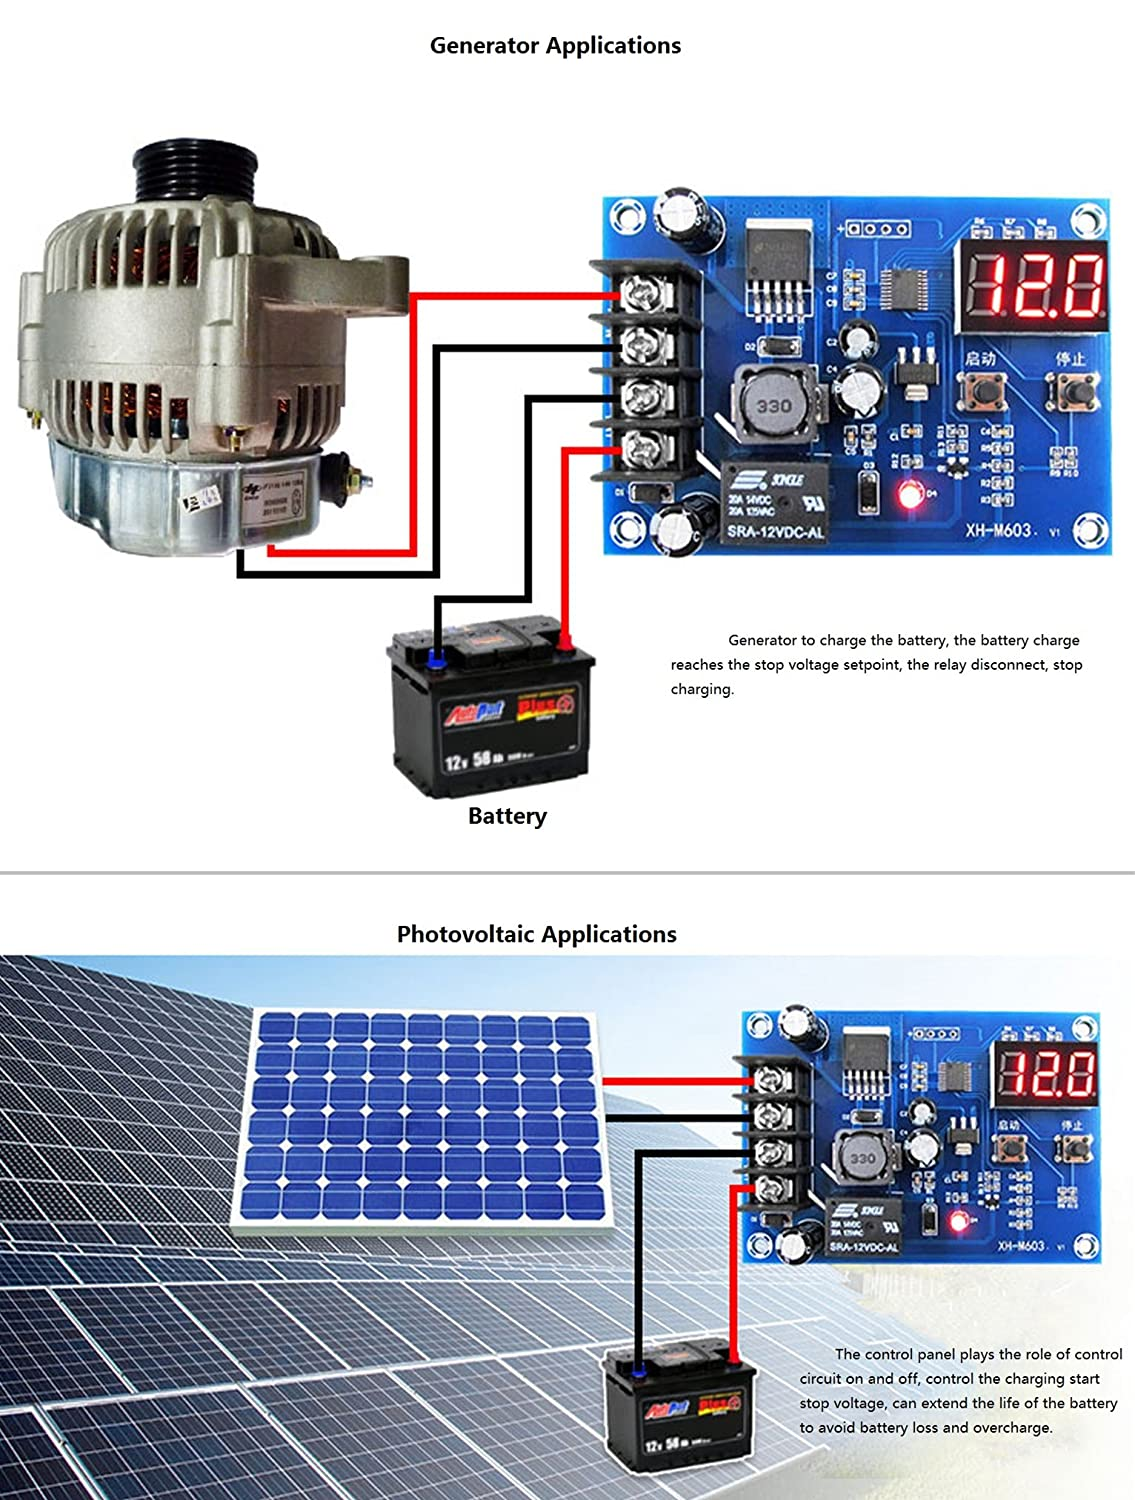 Noyito 12v 24v Battery Charging Control Board 12 Solar Charger With Overcharge Protection Electronic Max30v Charge Switch Auto Power Off Safe And Energy Saving Computers